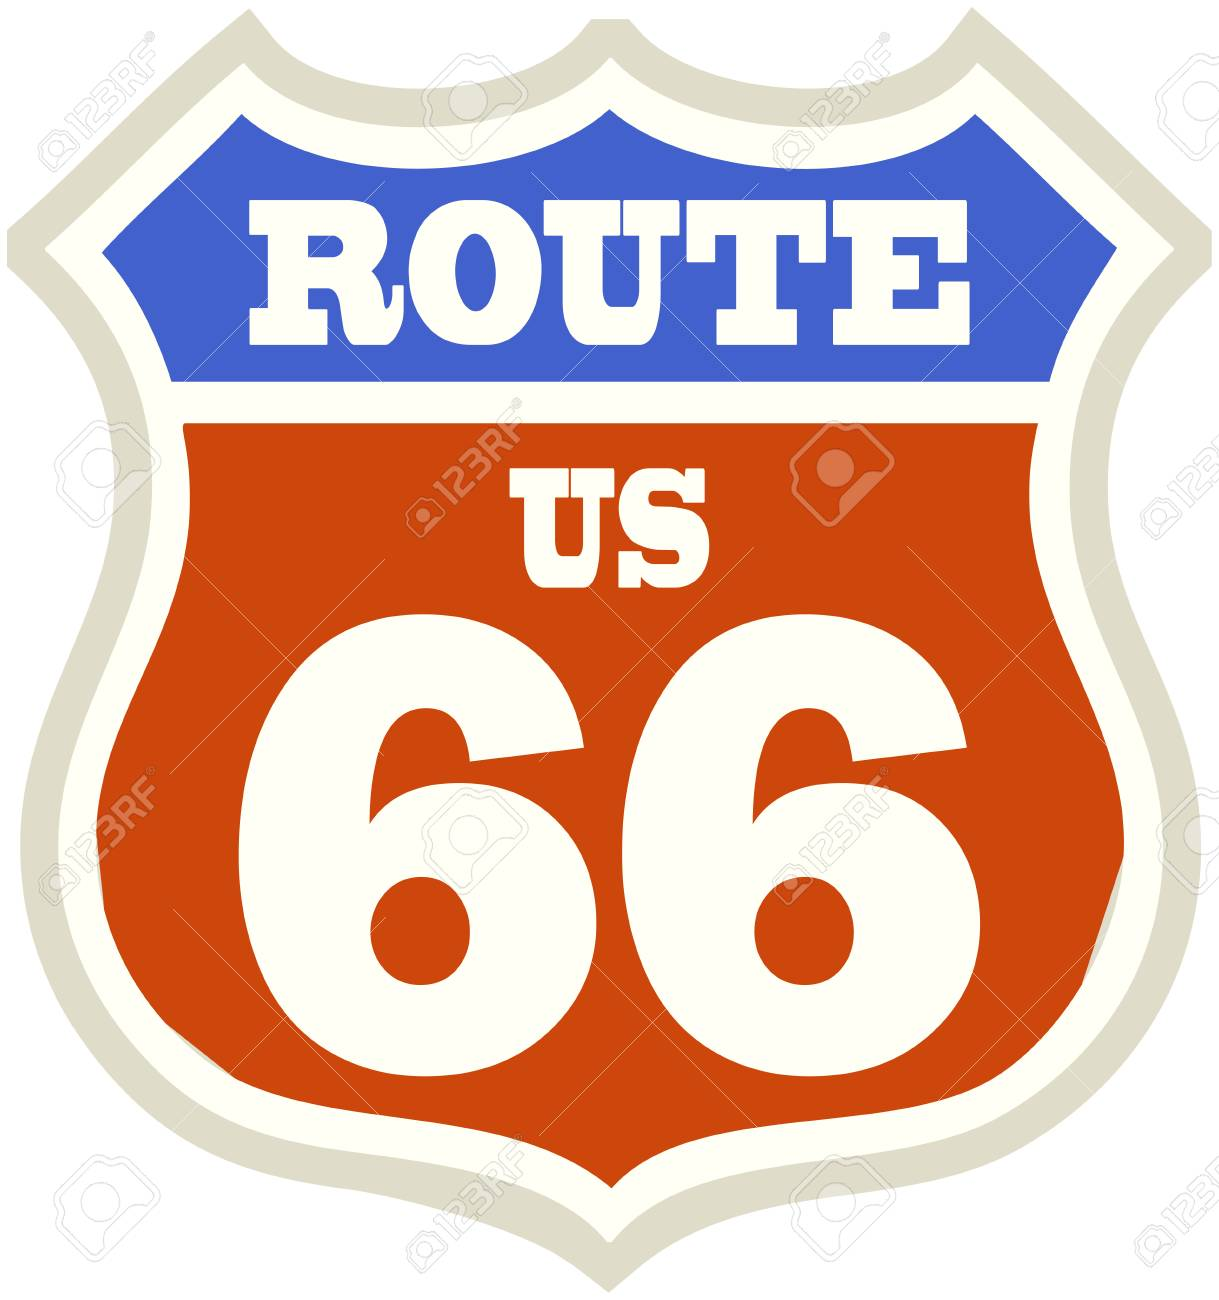 vintage route 66 road sign, retro style, vector illustration - 30323223